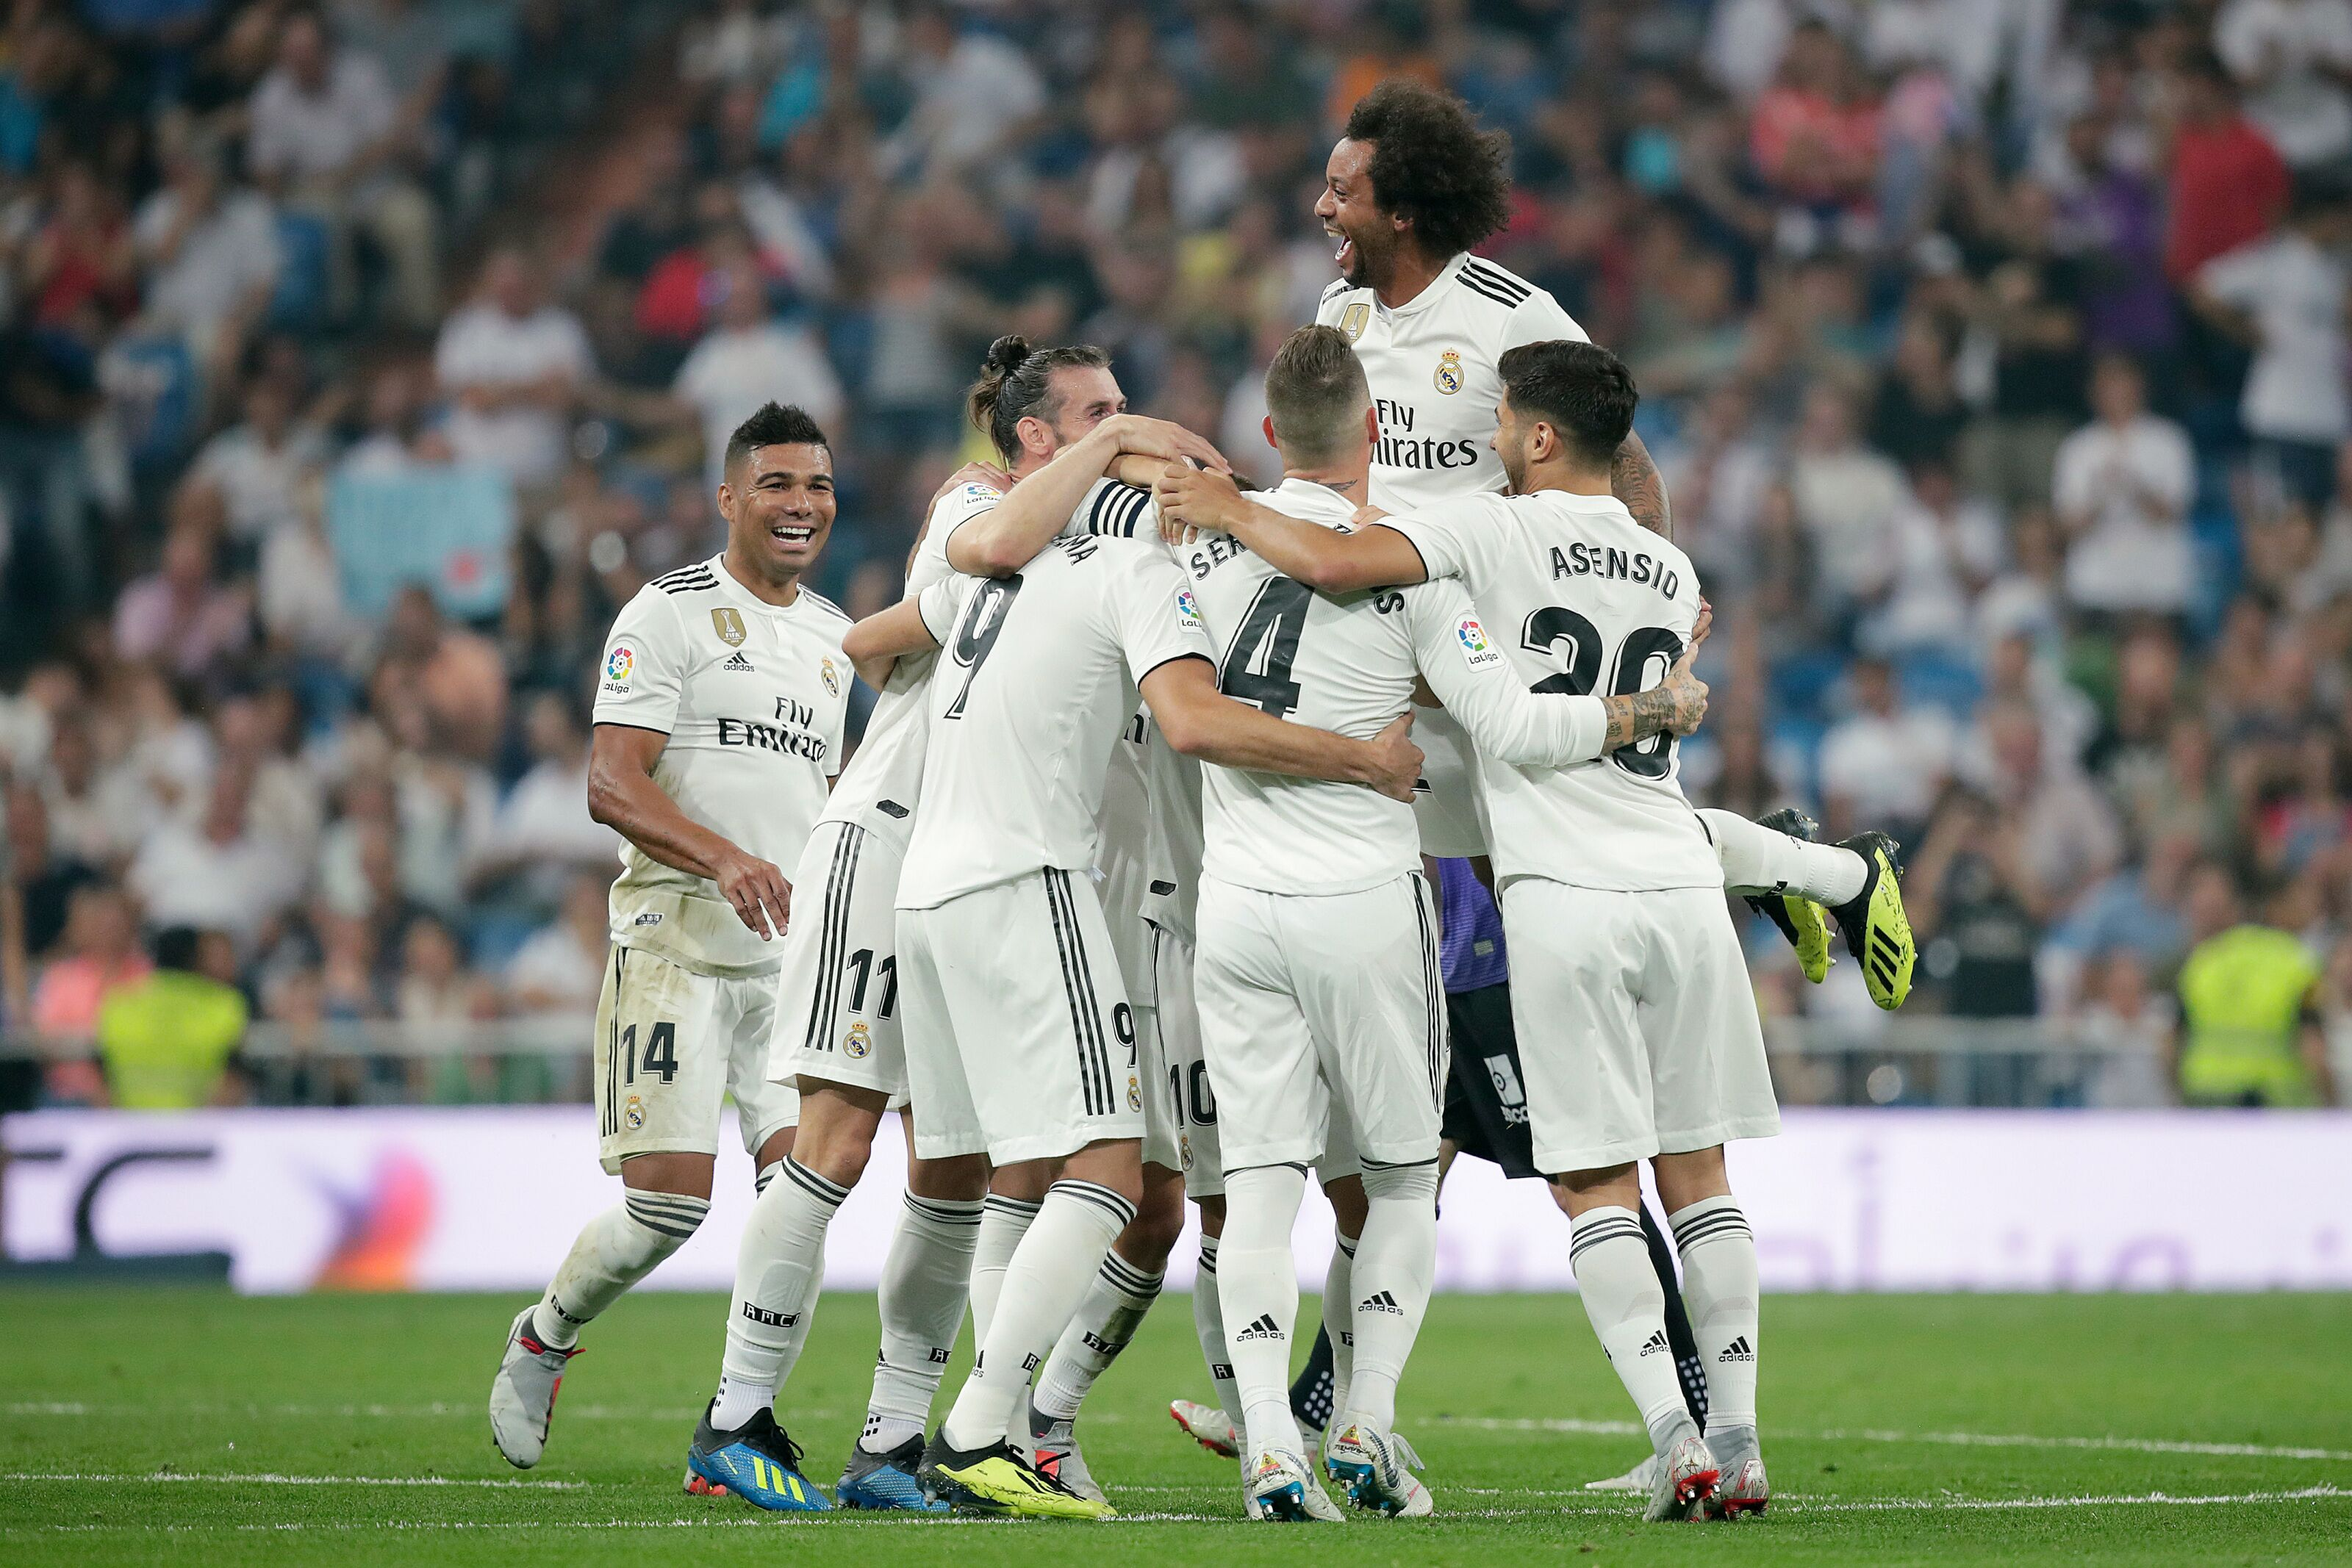 Real Madrid's predicted XI vs Espanyol: Lopetegui expected to rotate